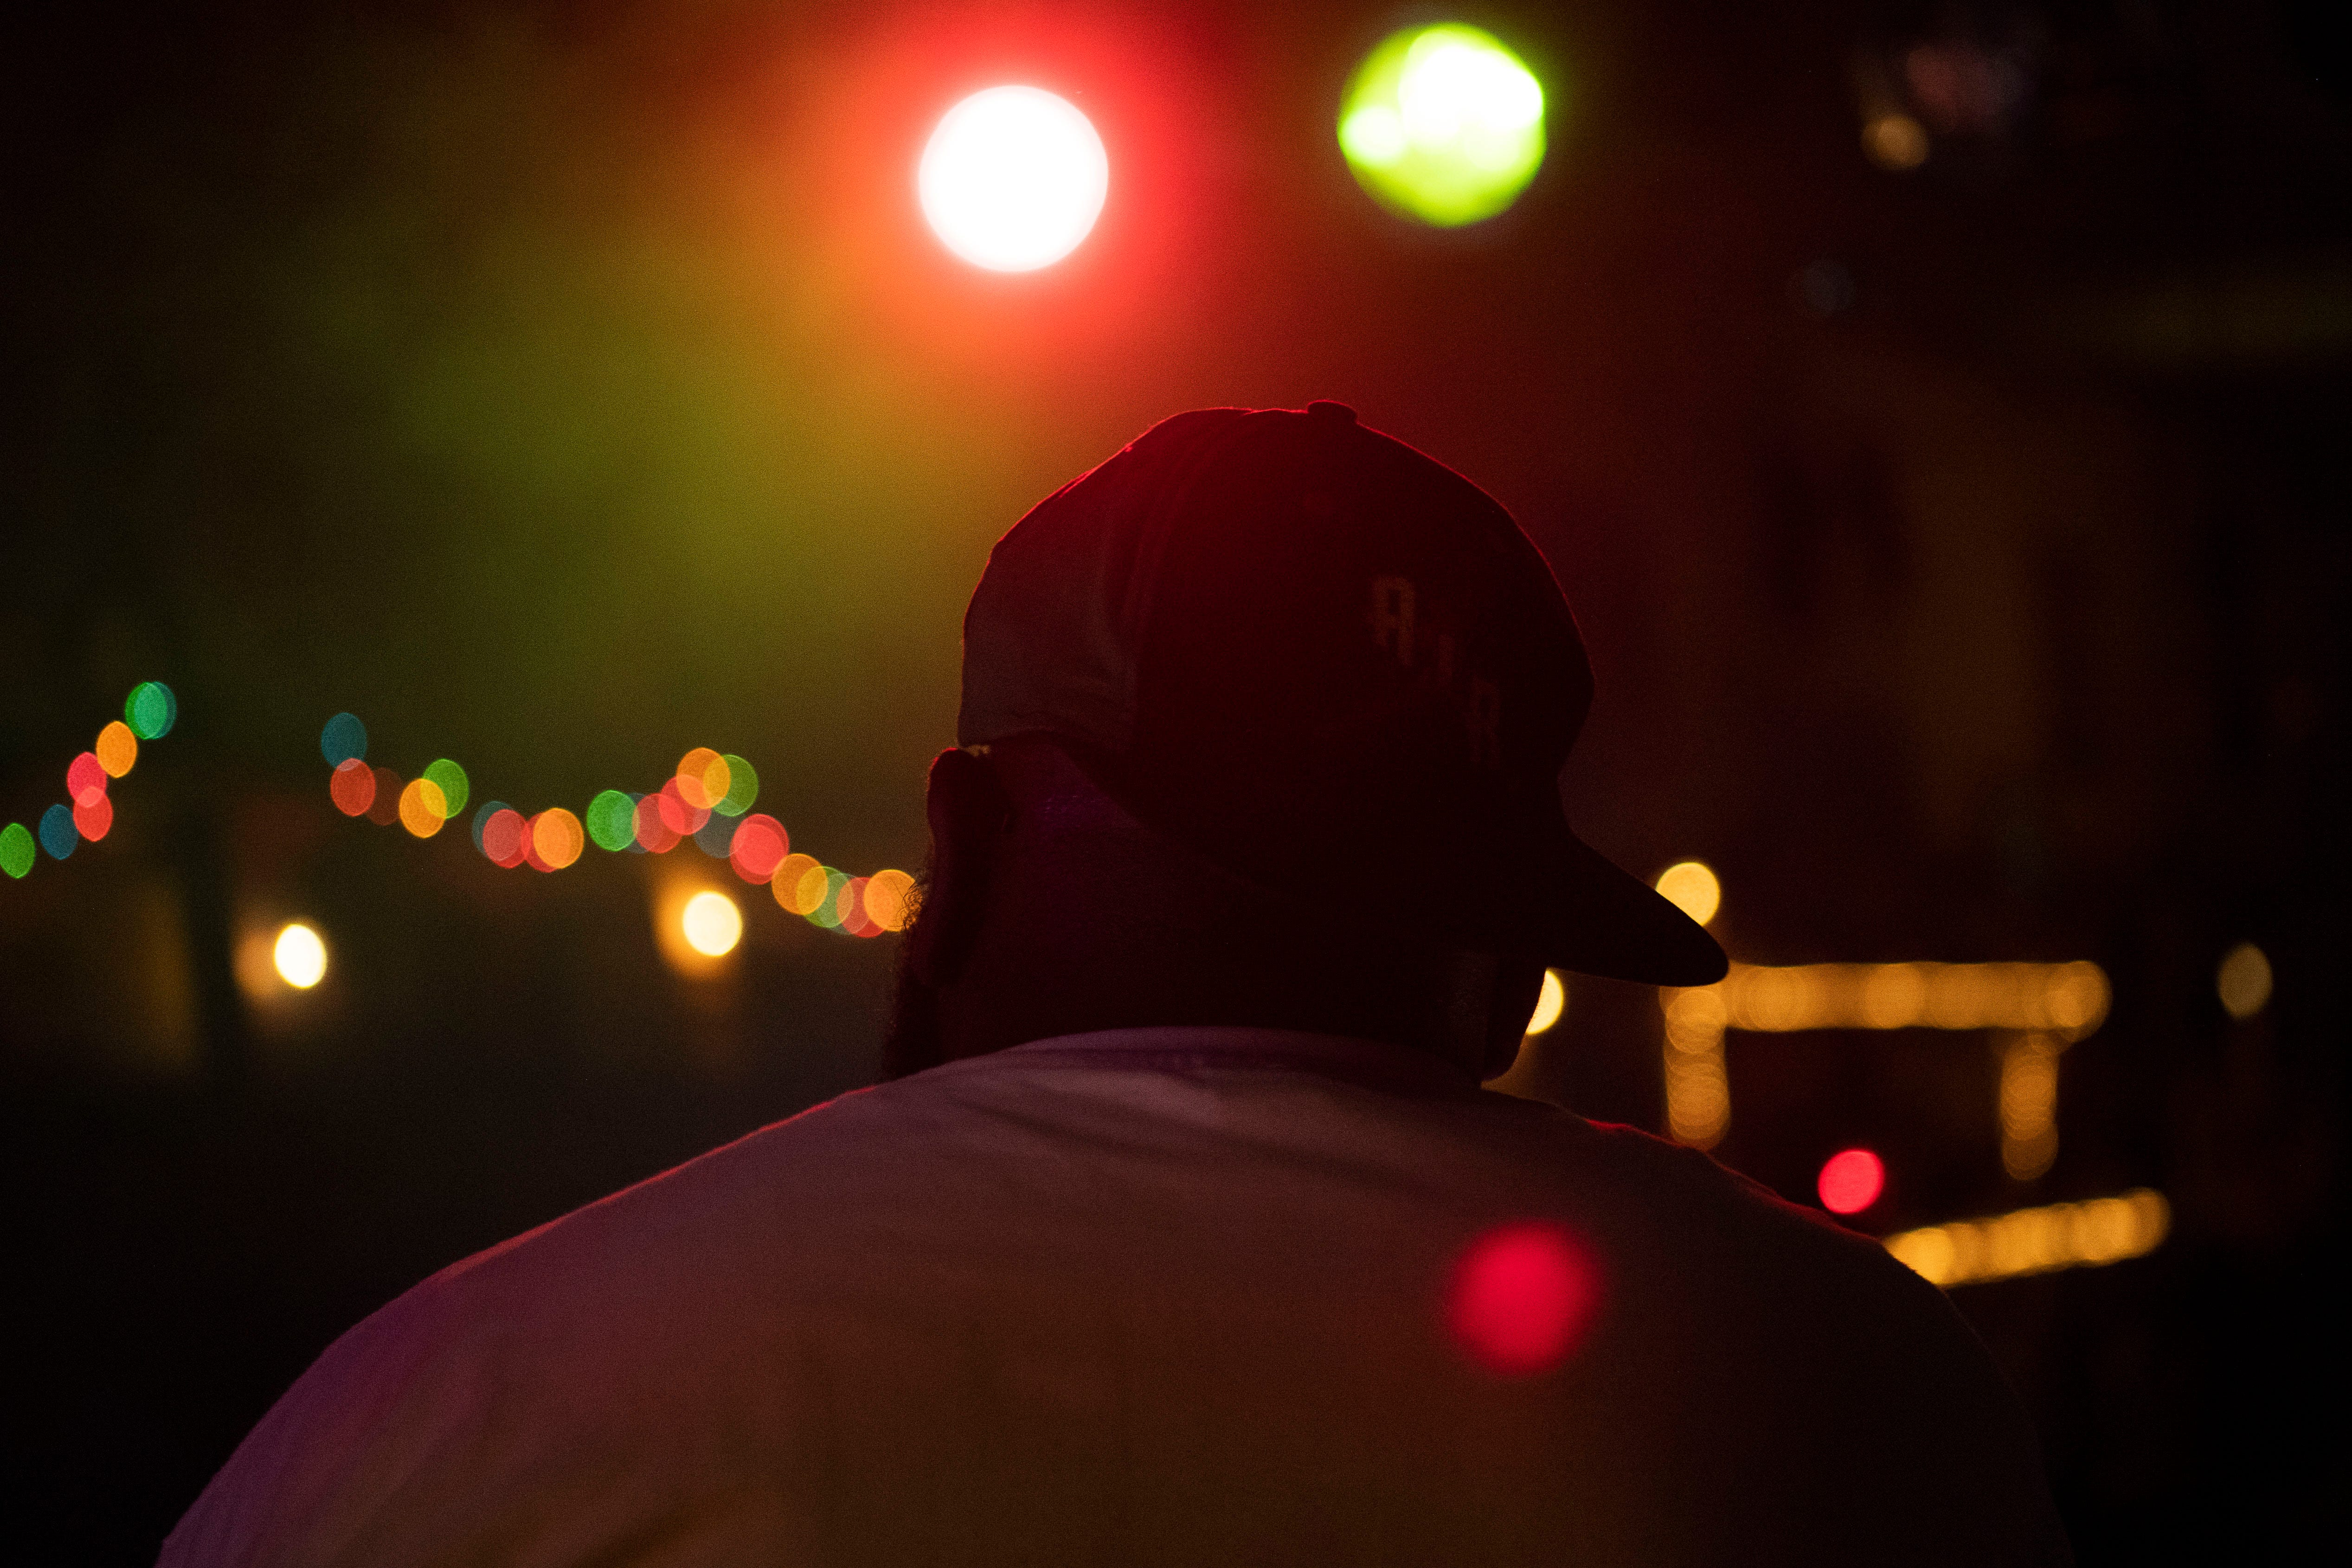 For artists who choose to stay in Knoxville, like Alonzo Rodgers, resources are limited. For the time being, those in the Good Guy Collective lean on other members for support until a venue dedicated to hip-hop is created or someone's music grows big enough to put Knoxville's scene on the map.